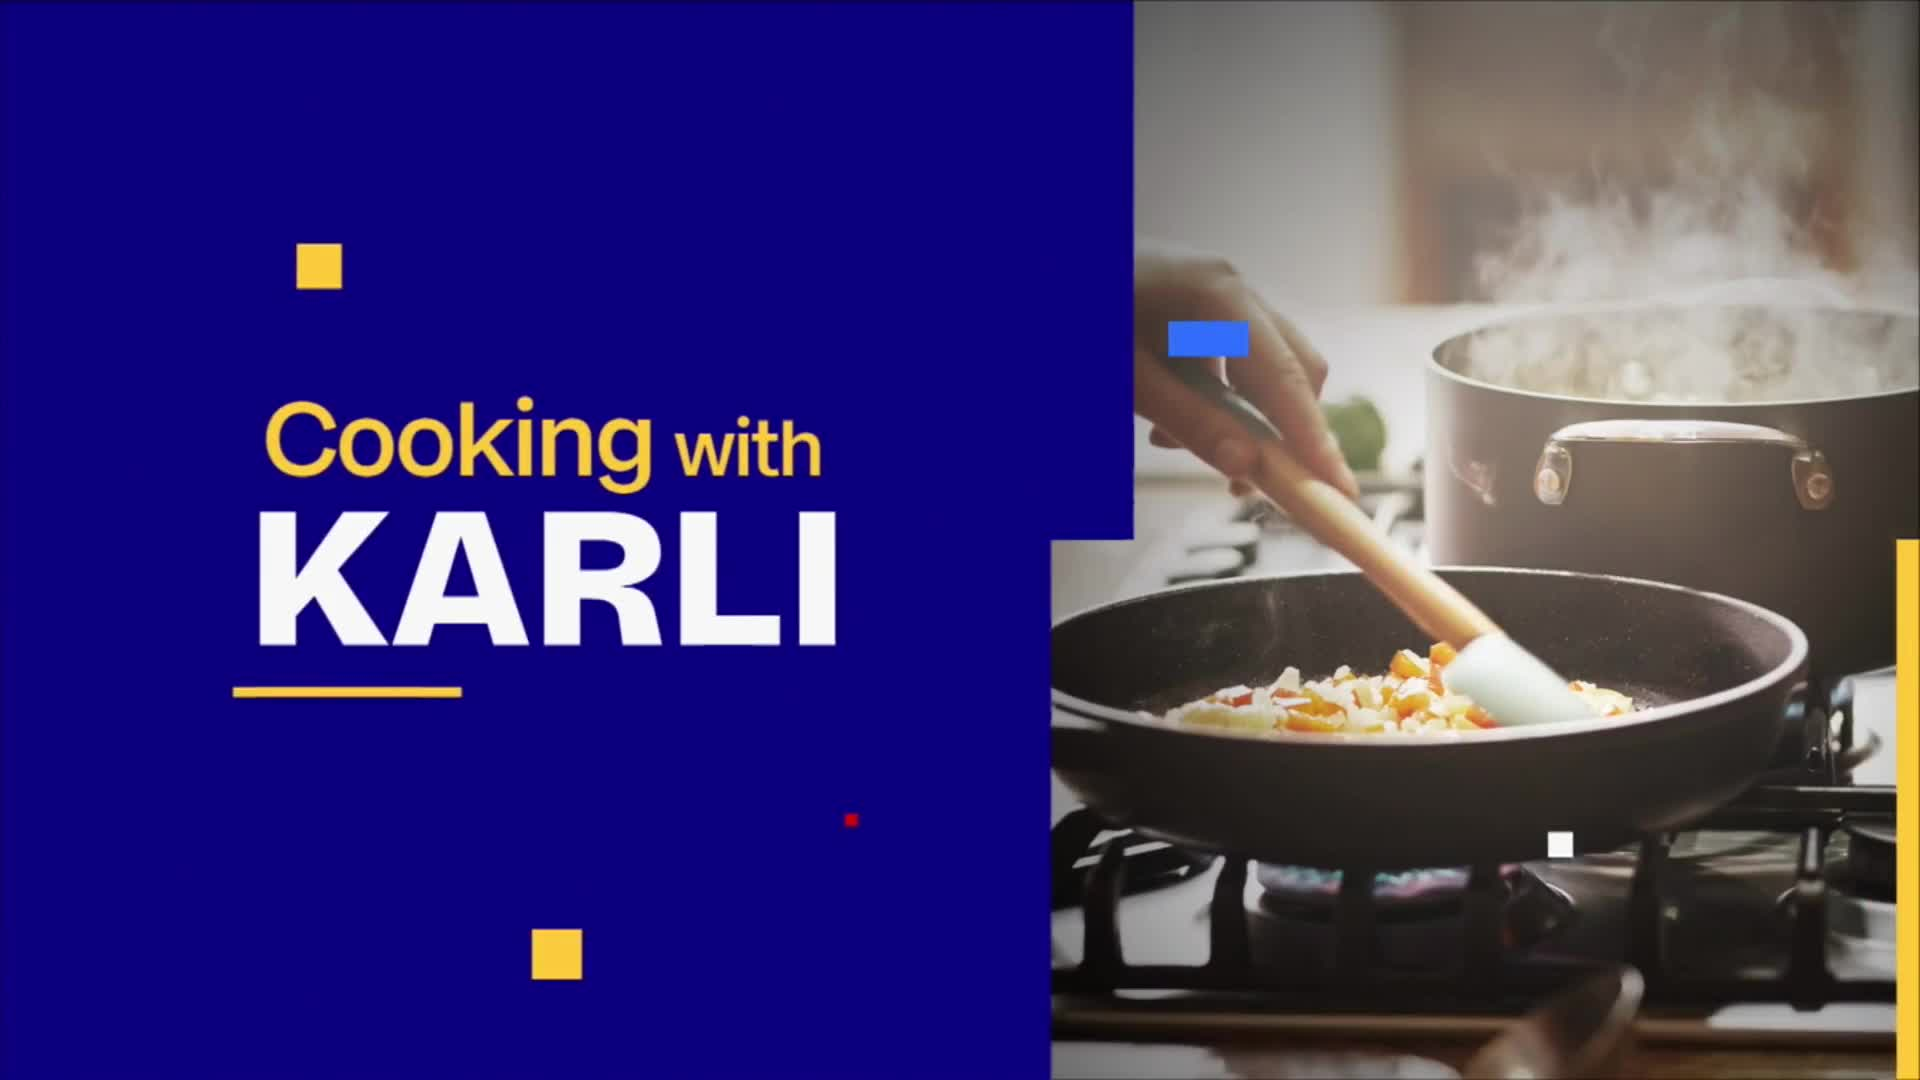 Cooking with Karli graphic